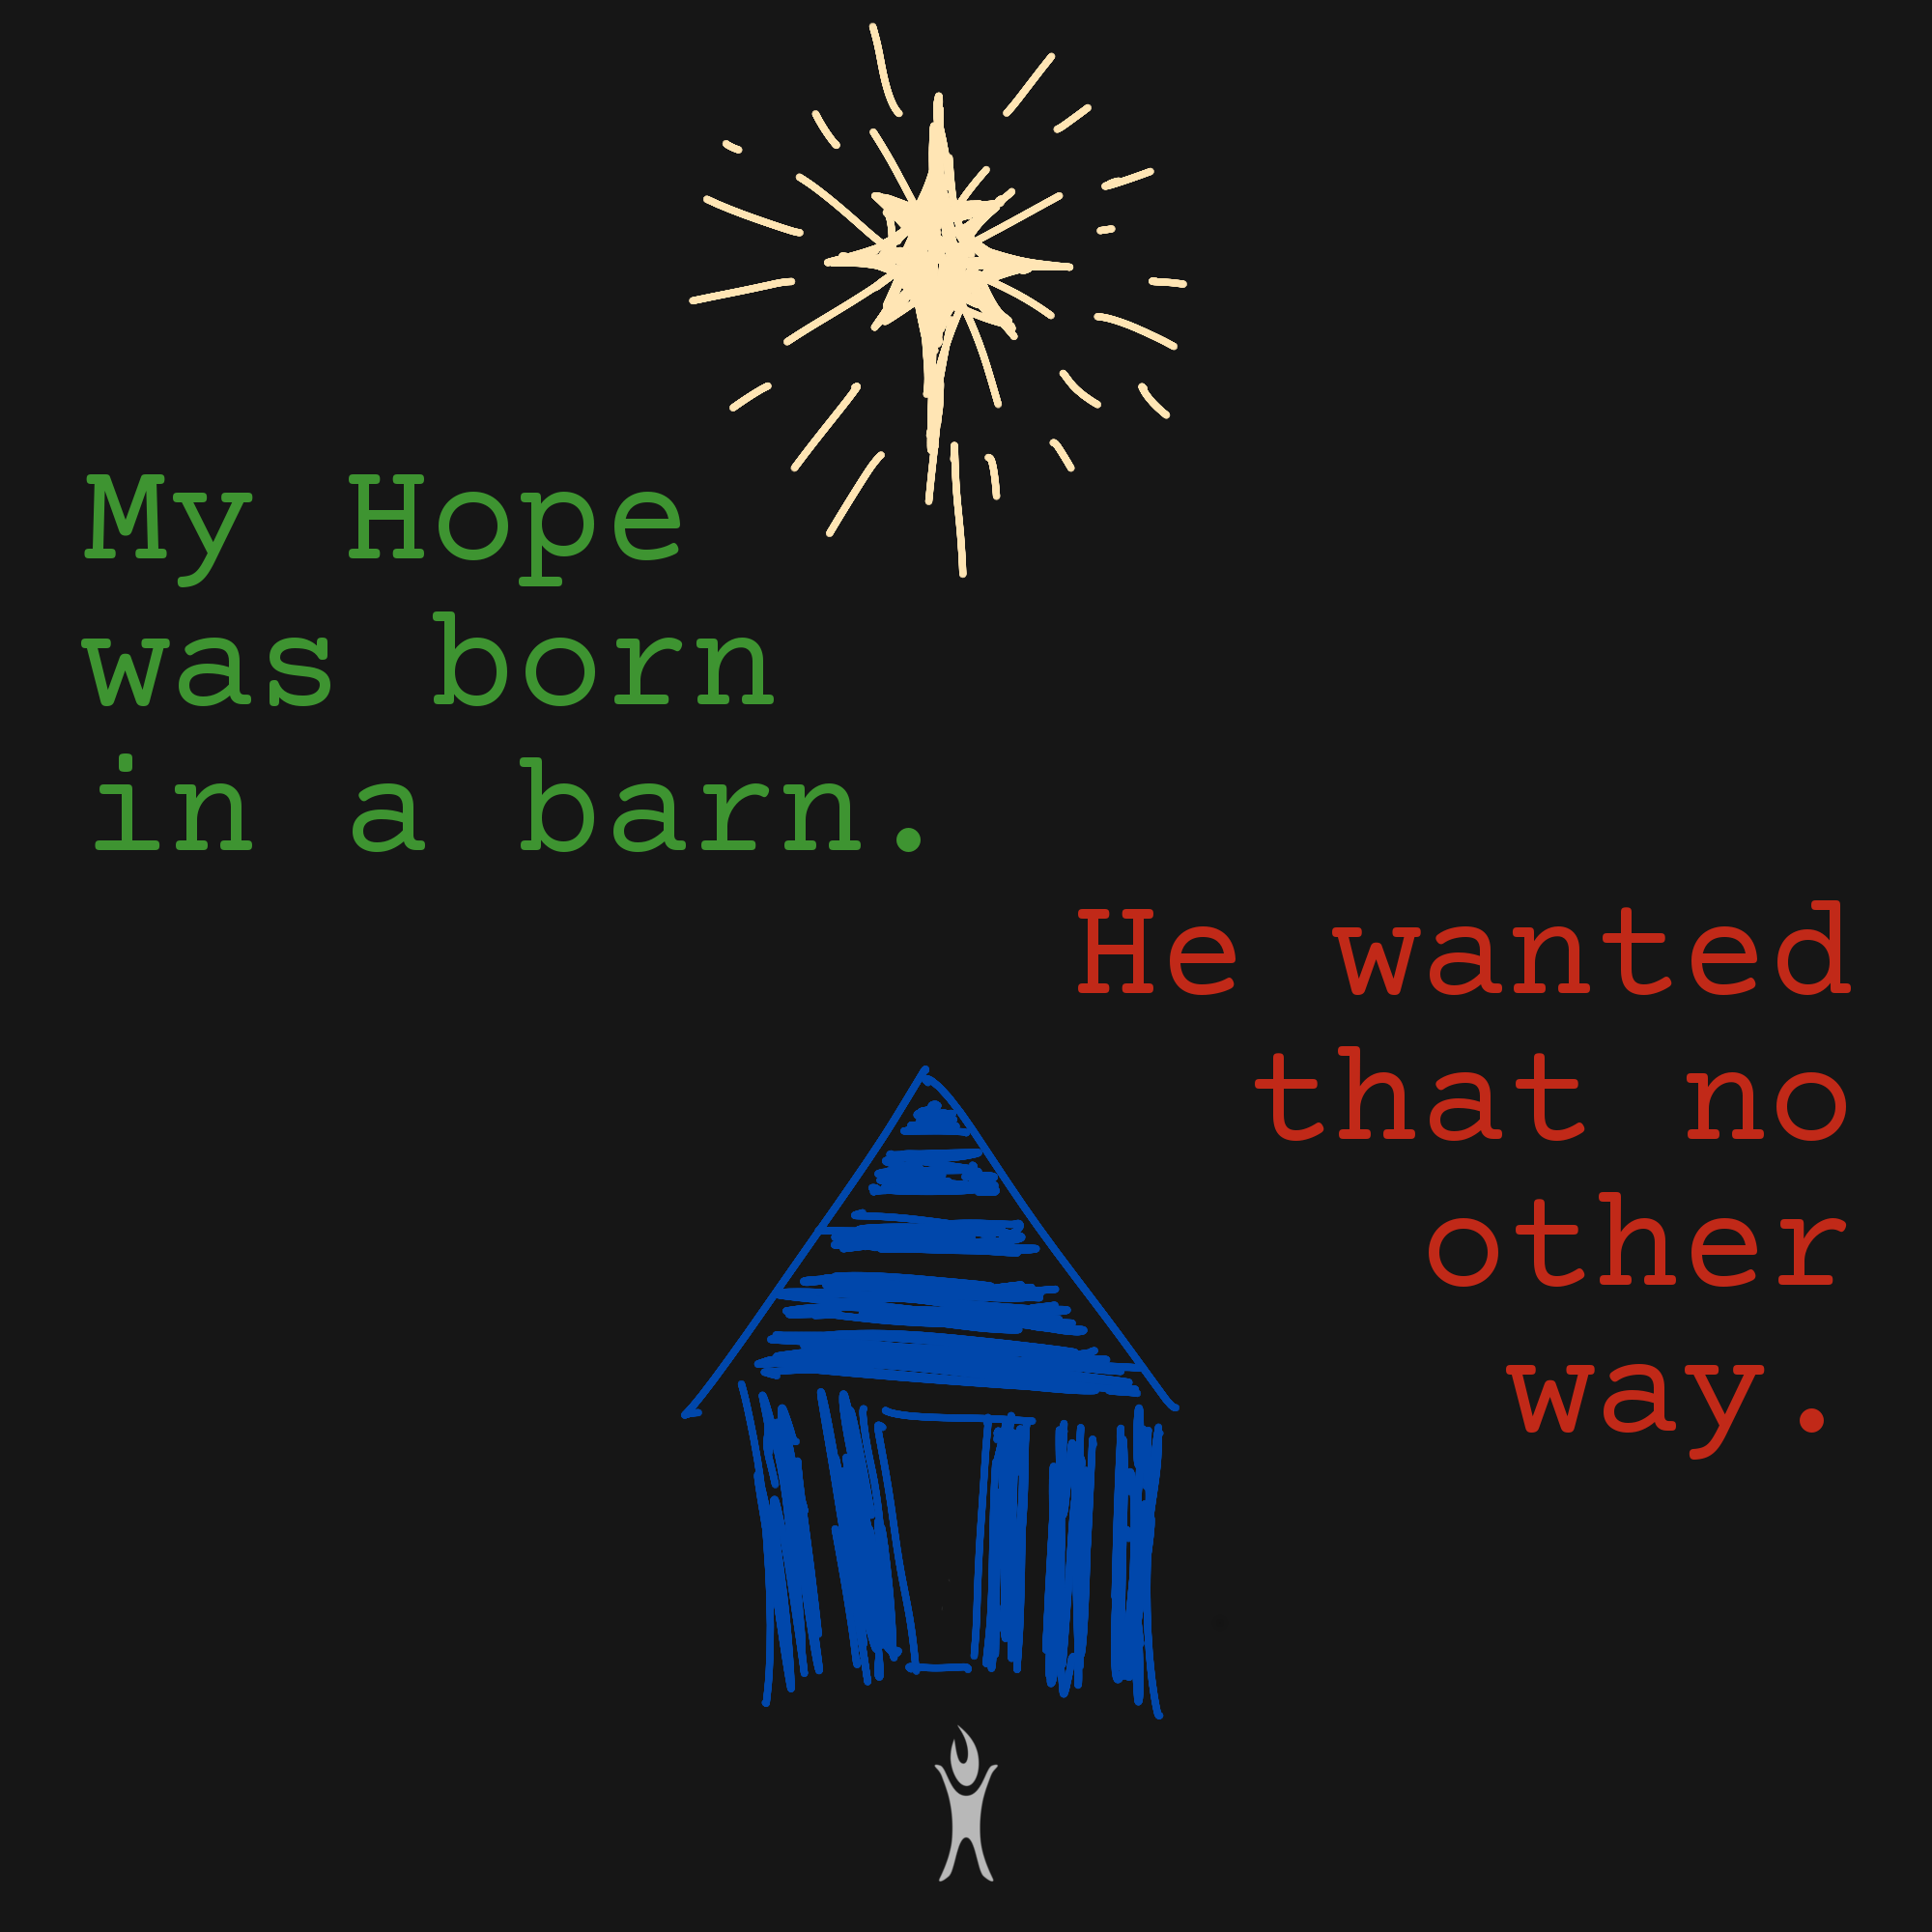 My Hope was born in a barn. He wanted that no other way.